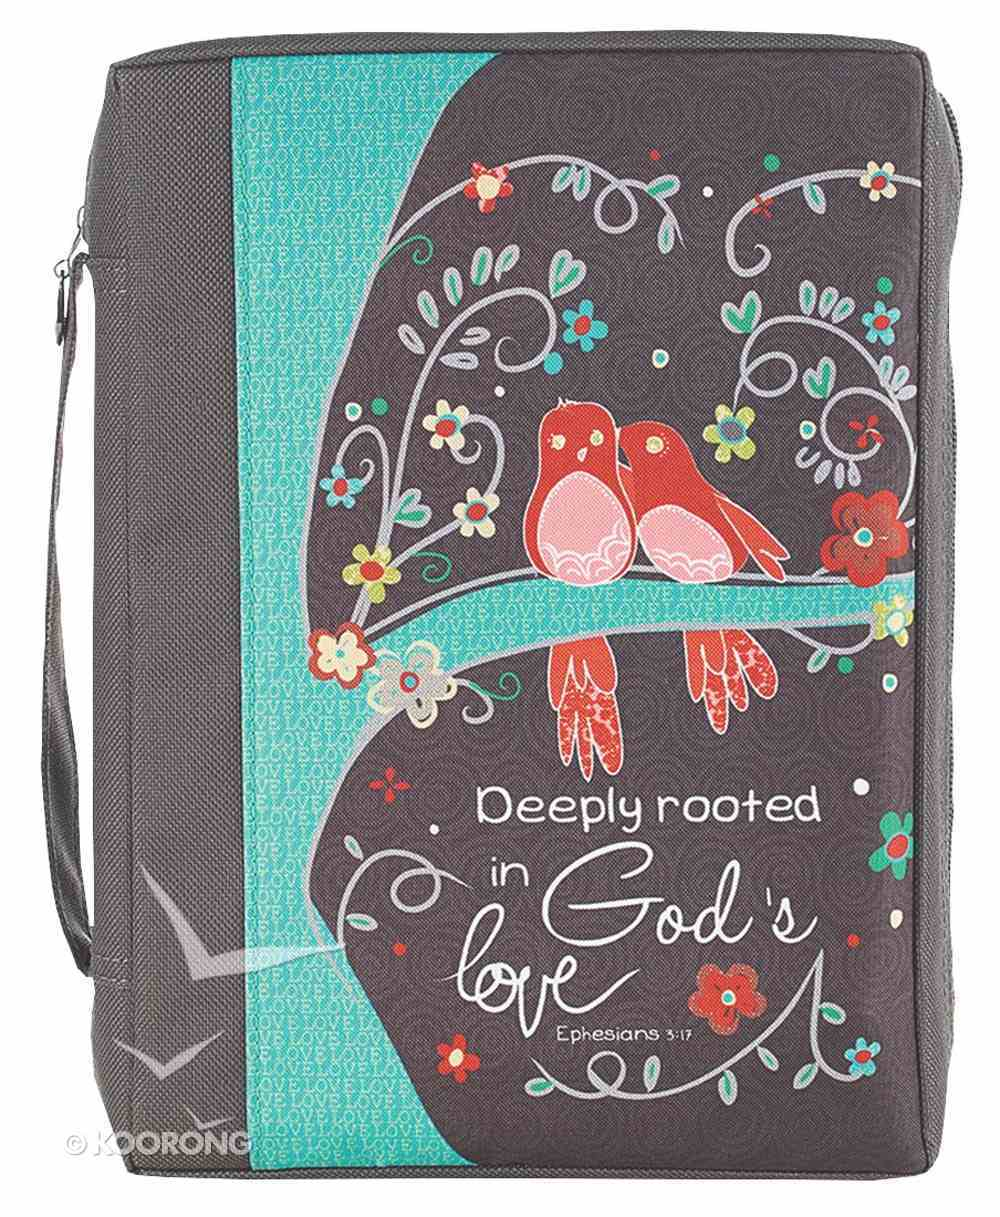 Bible Cover Value Large: God's Love Eph. 3:17 Bible Cover